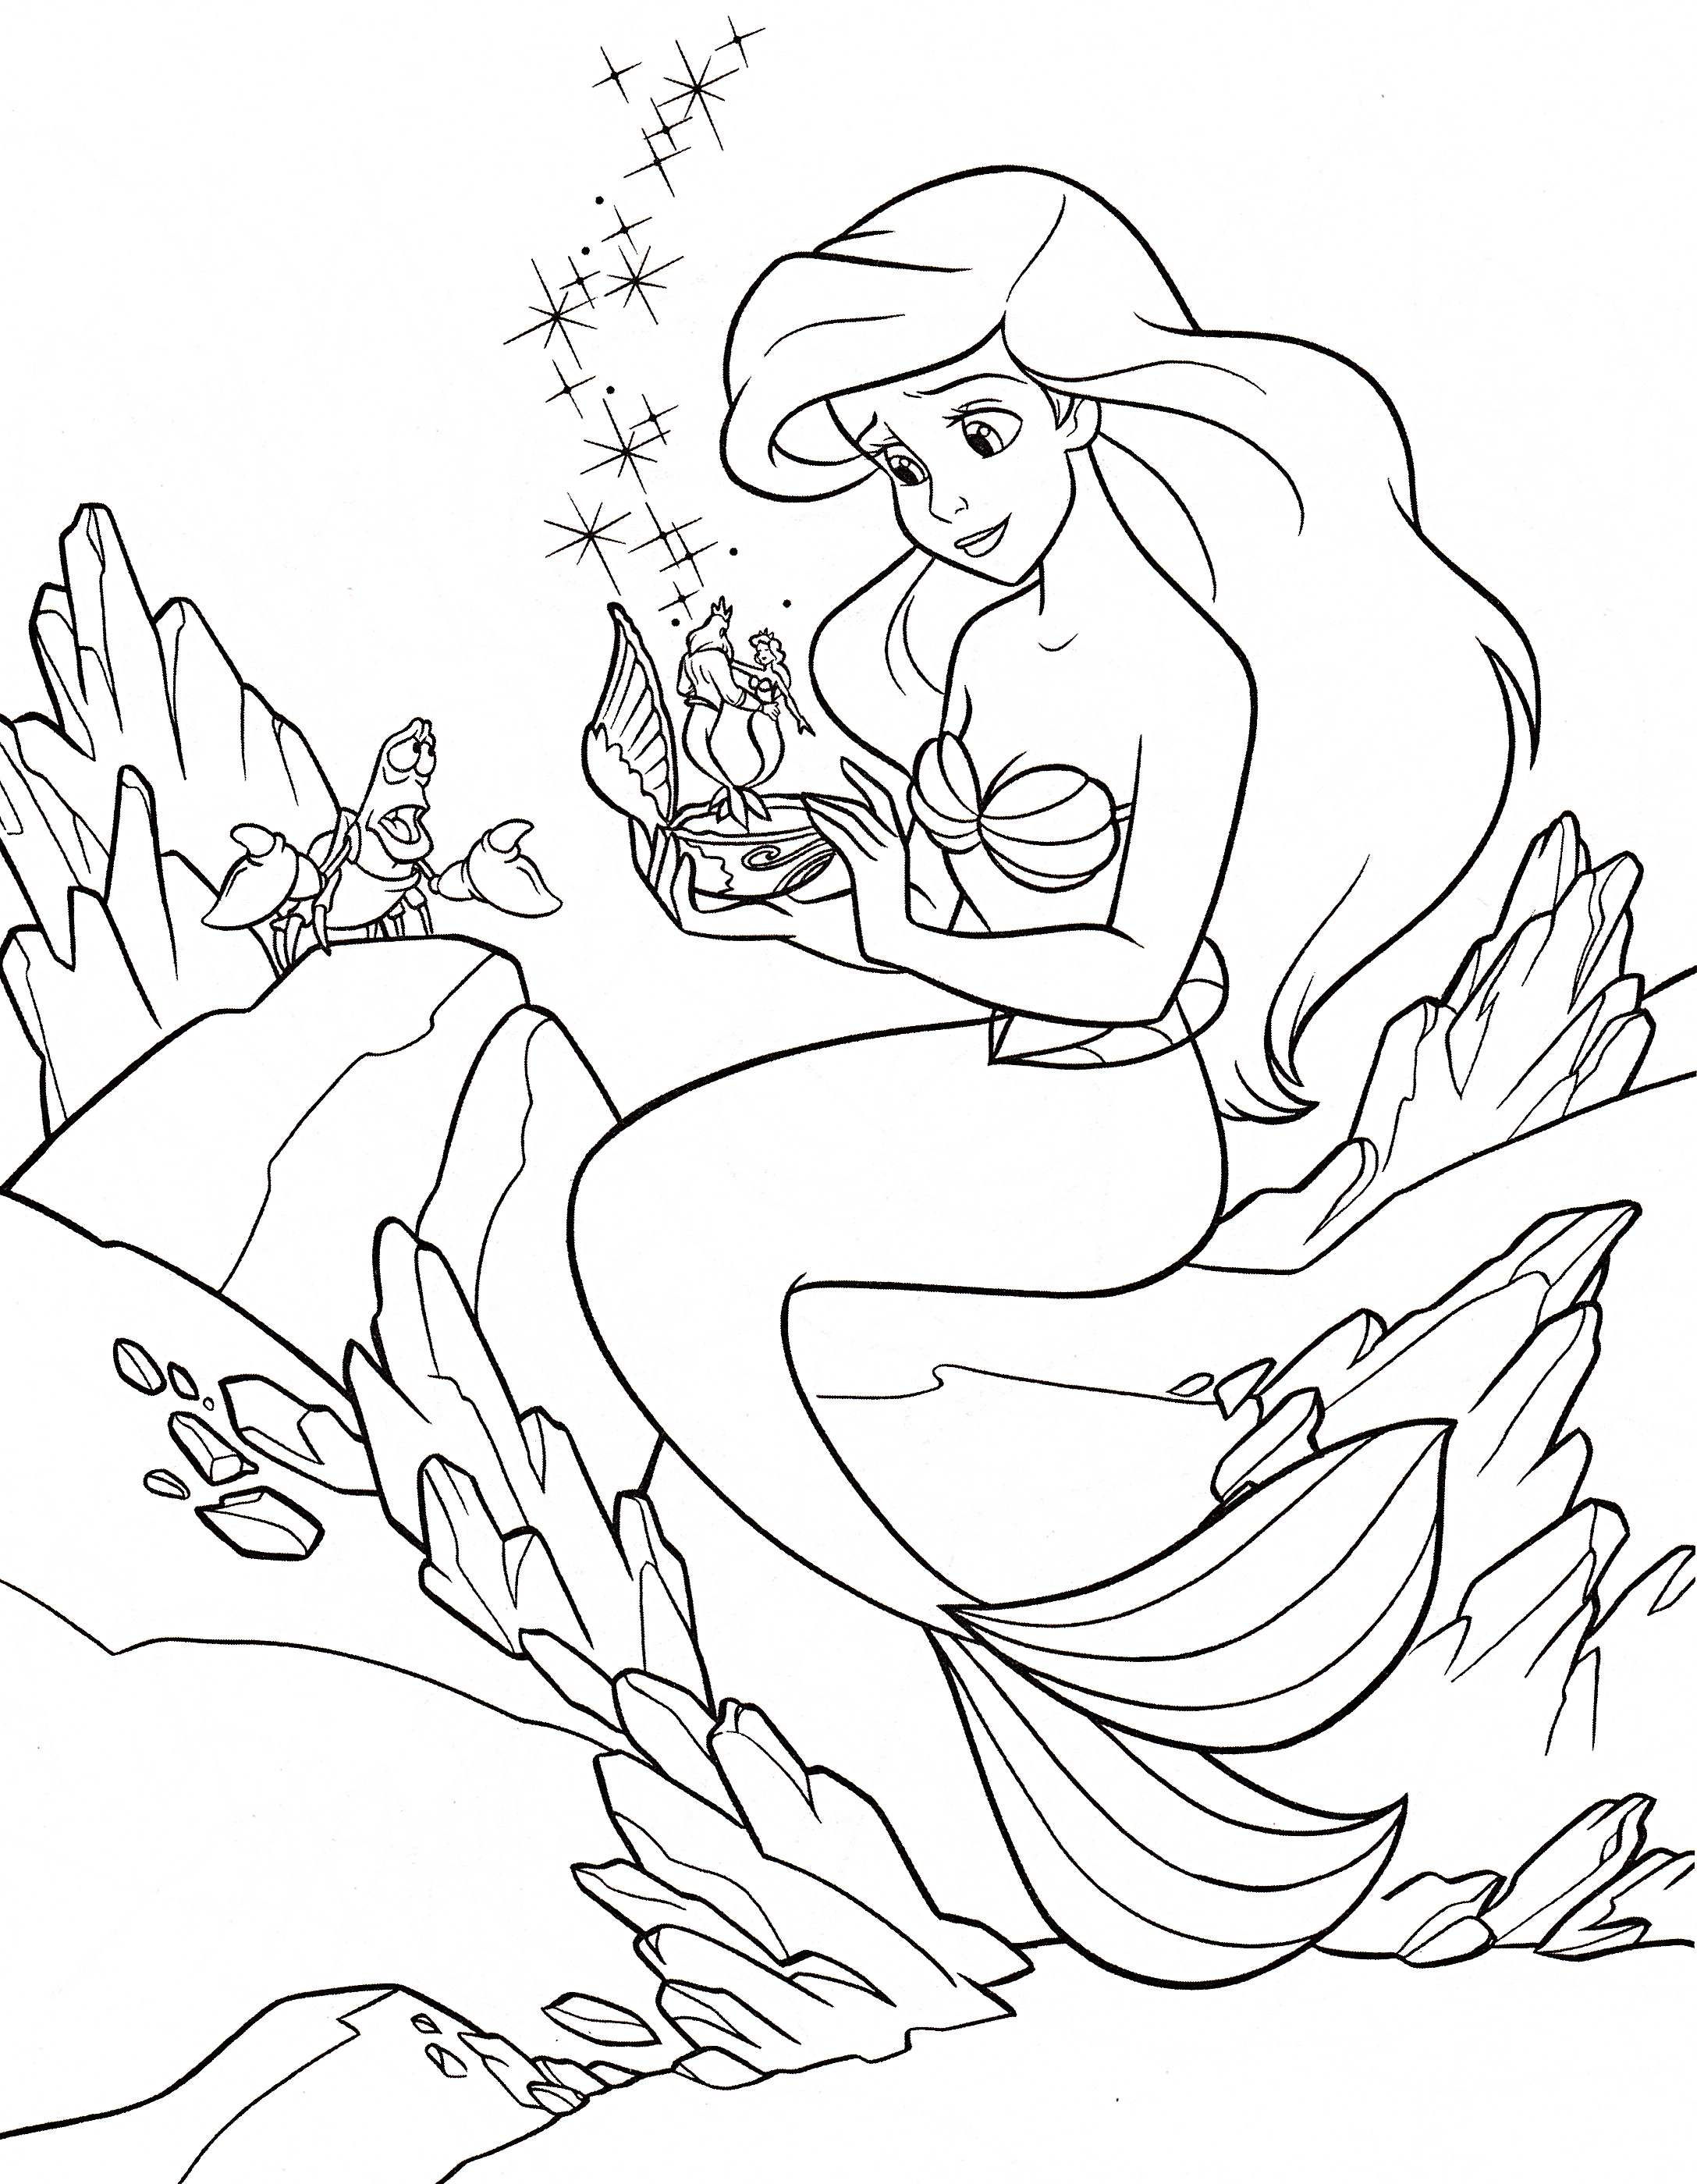 Walt Disney Characters images Walt Disney Coloring Pages - Sebastian ...